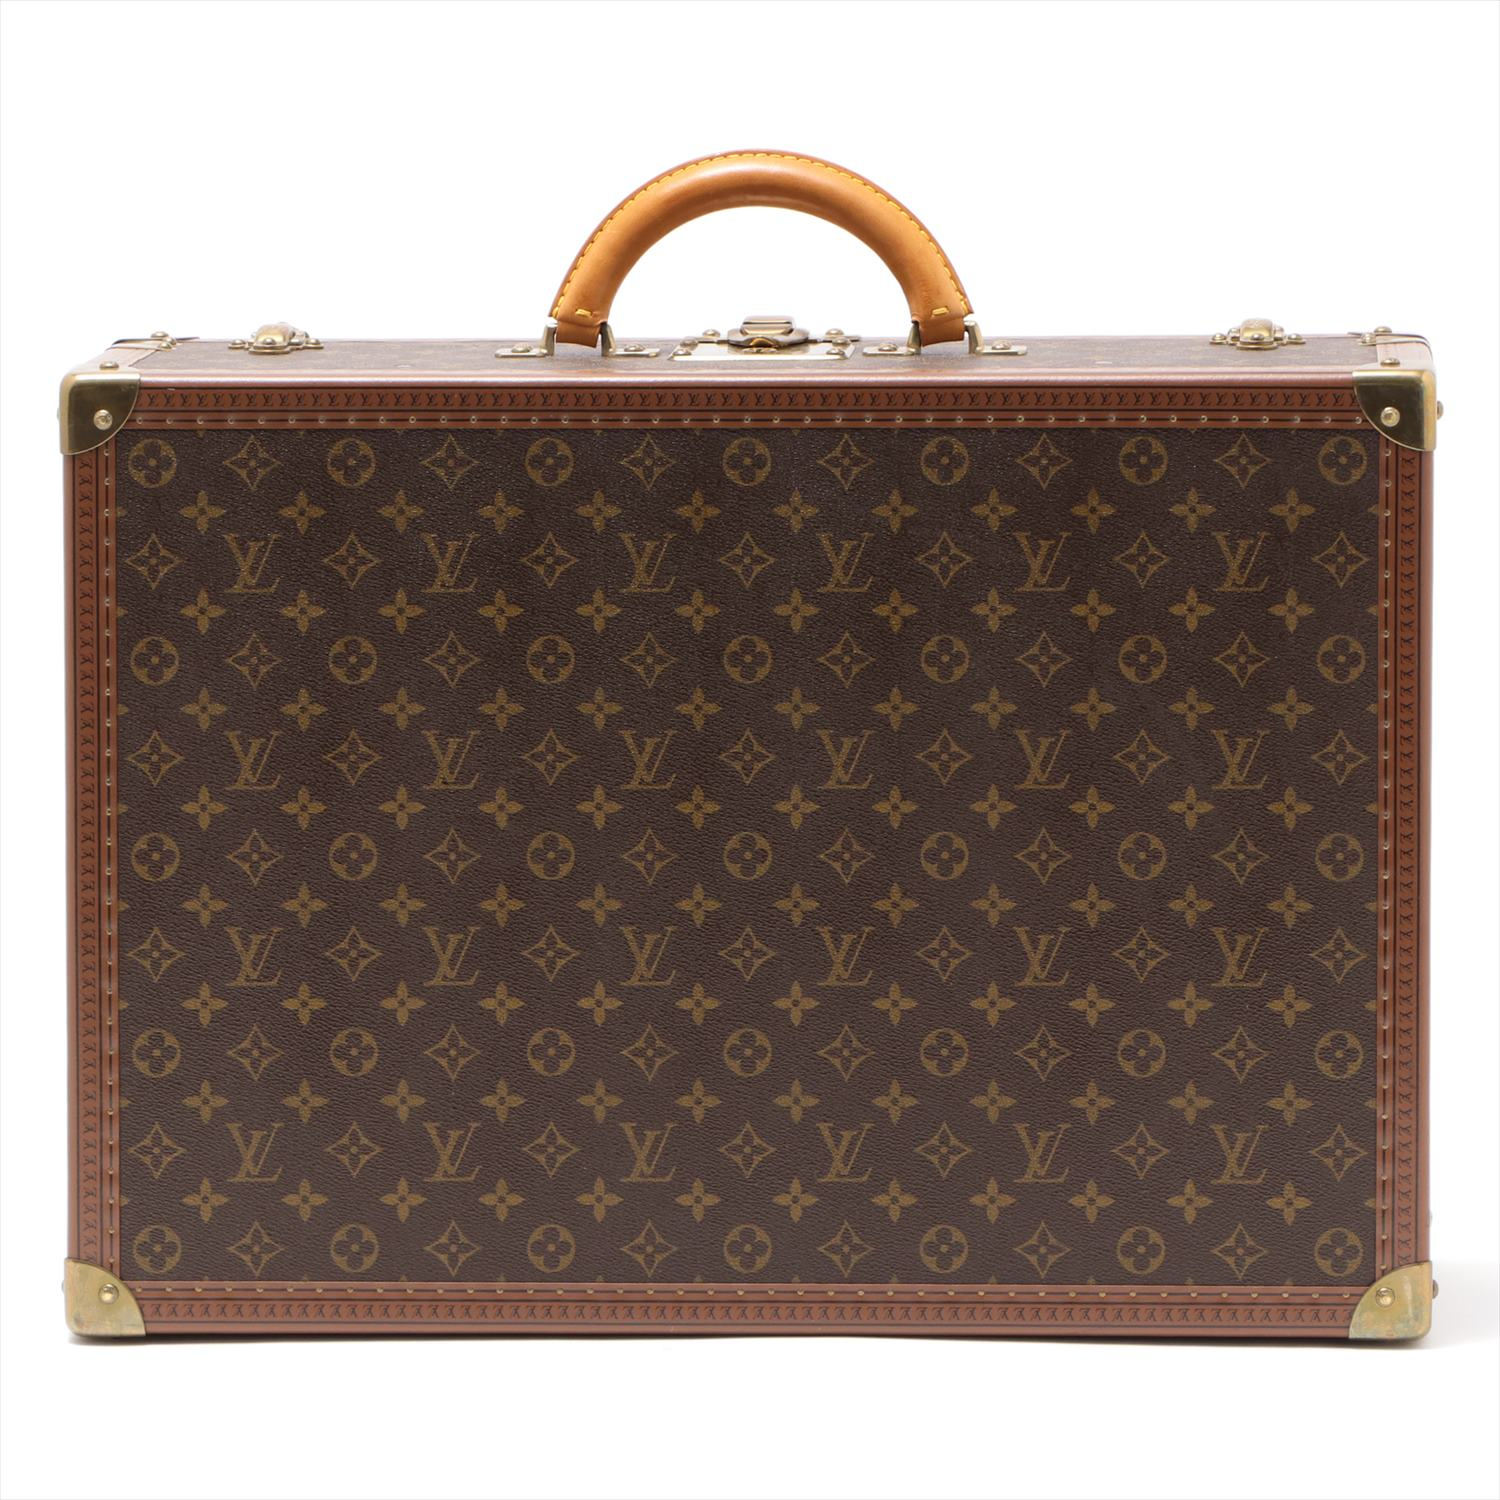 [Used goods] Vuitton monogram Kotoviru 55 M21421